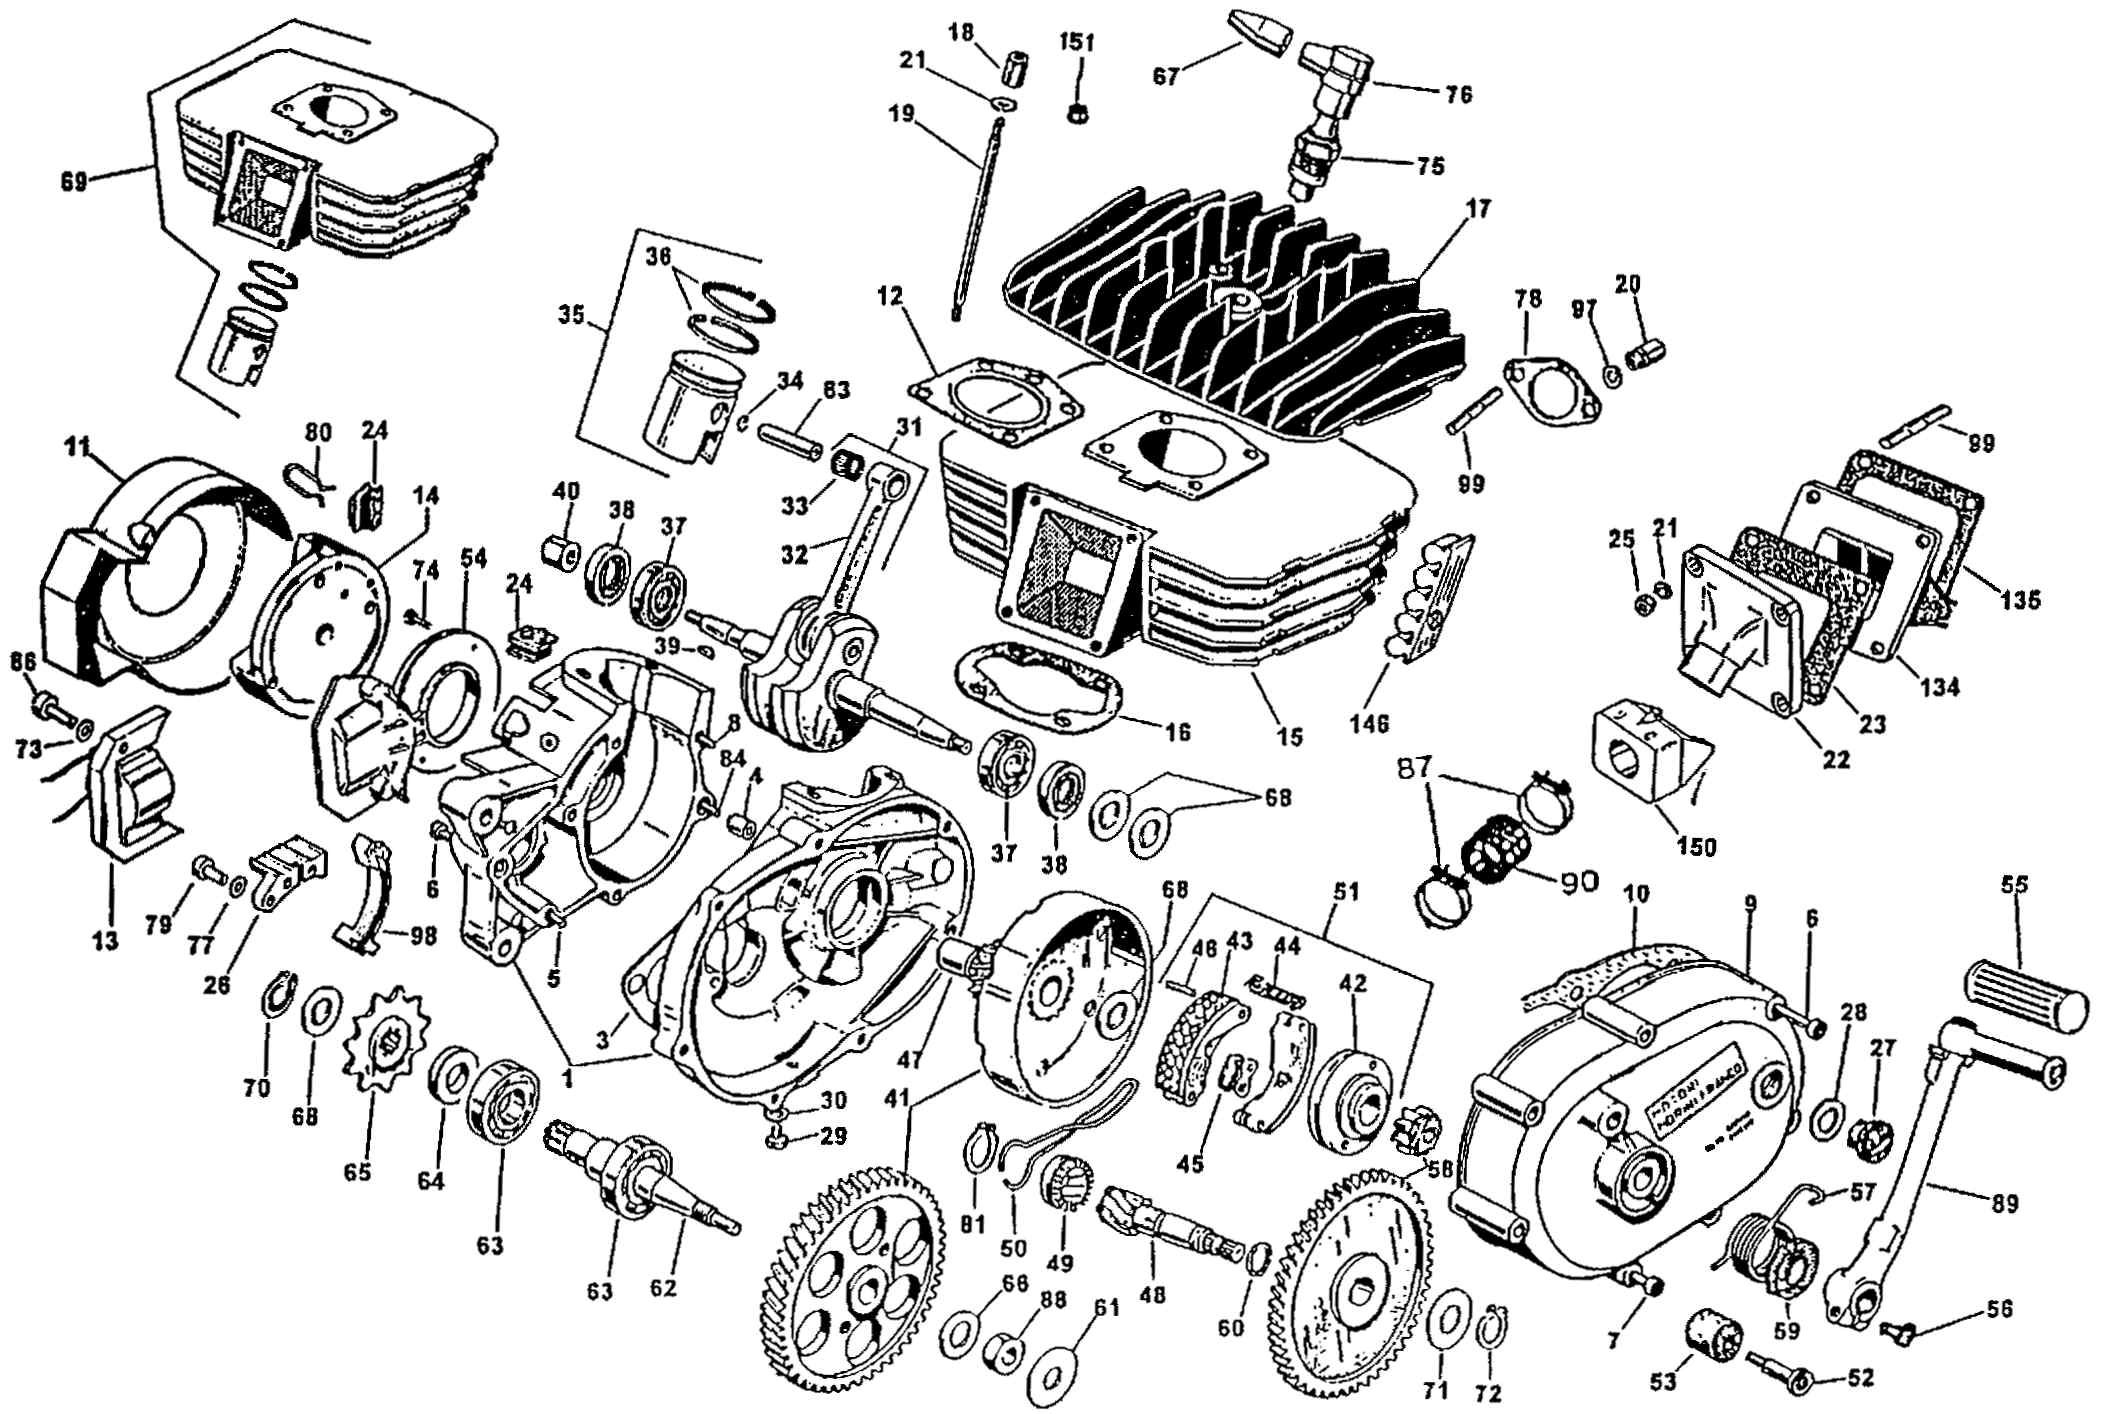 small resolution of car mechanical drawings technical illustration technical drawings car engine motorcycle engine exploded